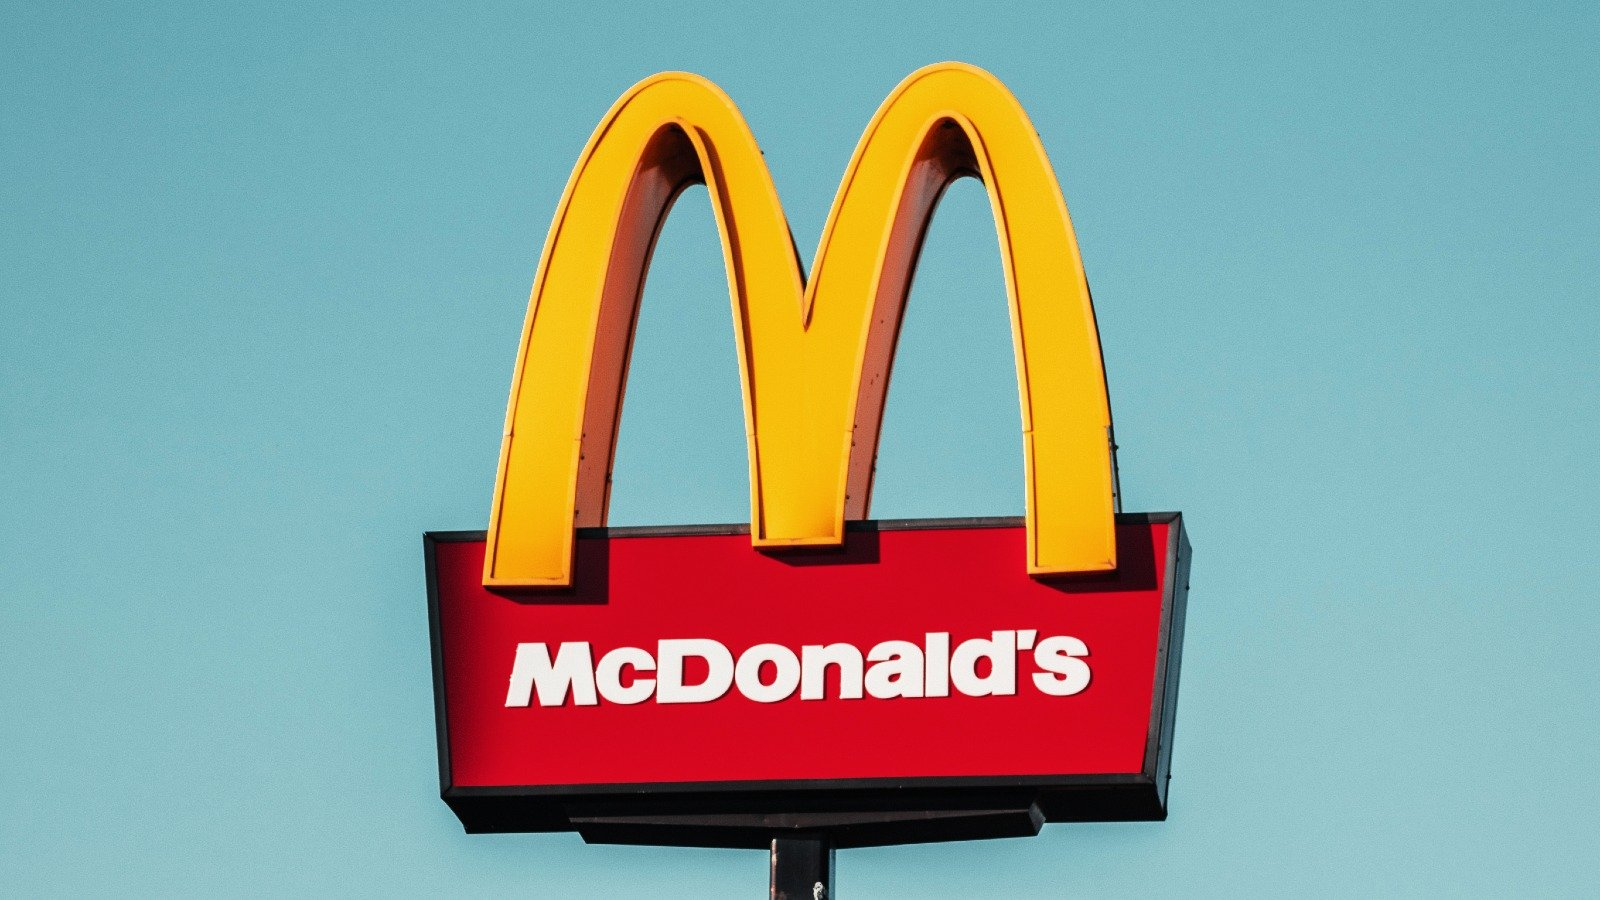 McDonald's discloses data breach after theft of customer, employee info